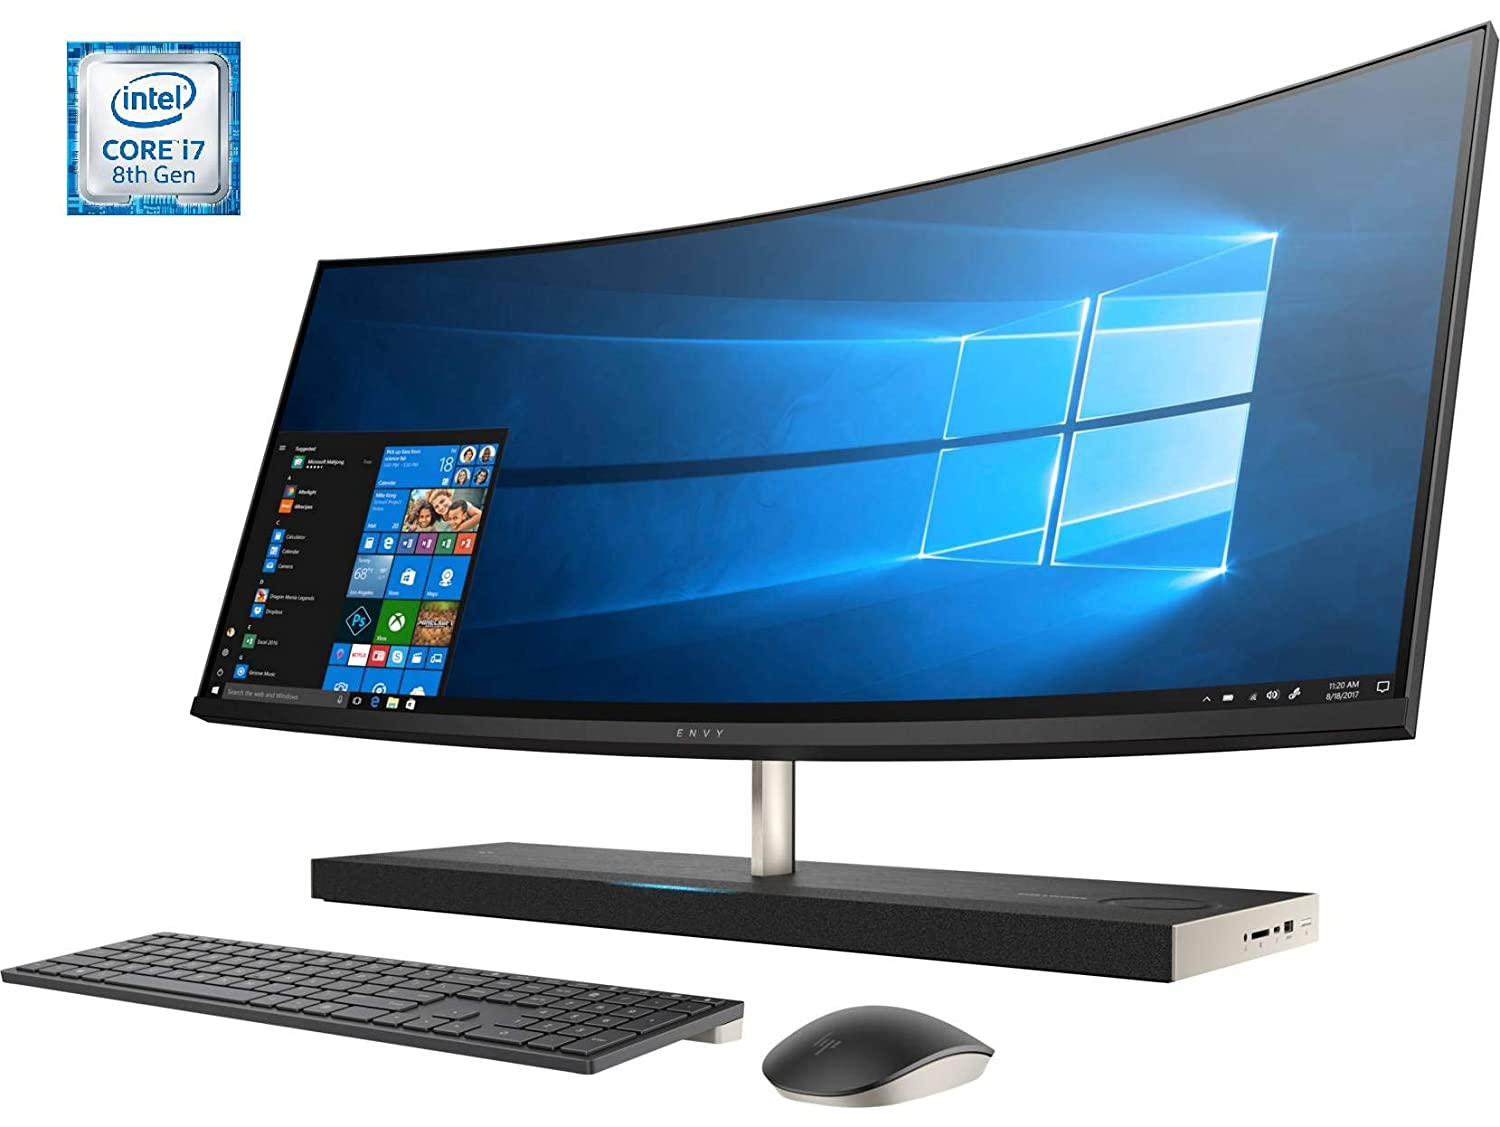 HP Envy Curved All-in-One -34-b100ns - Ordenador de sobremesa Todo en Uno QHD UltraWide 34